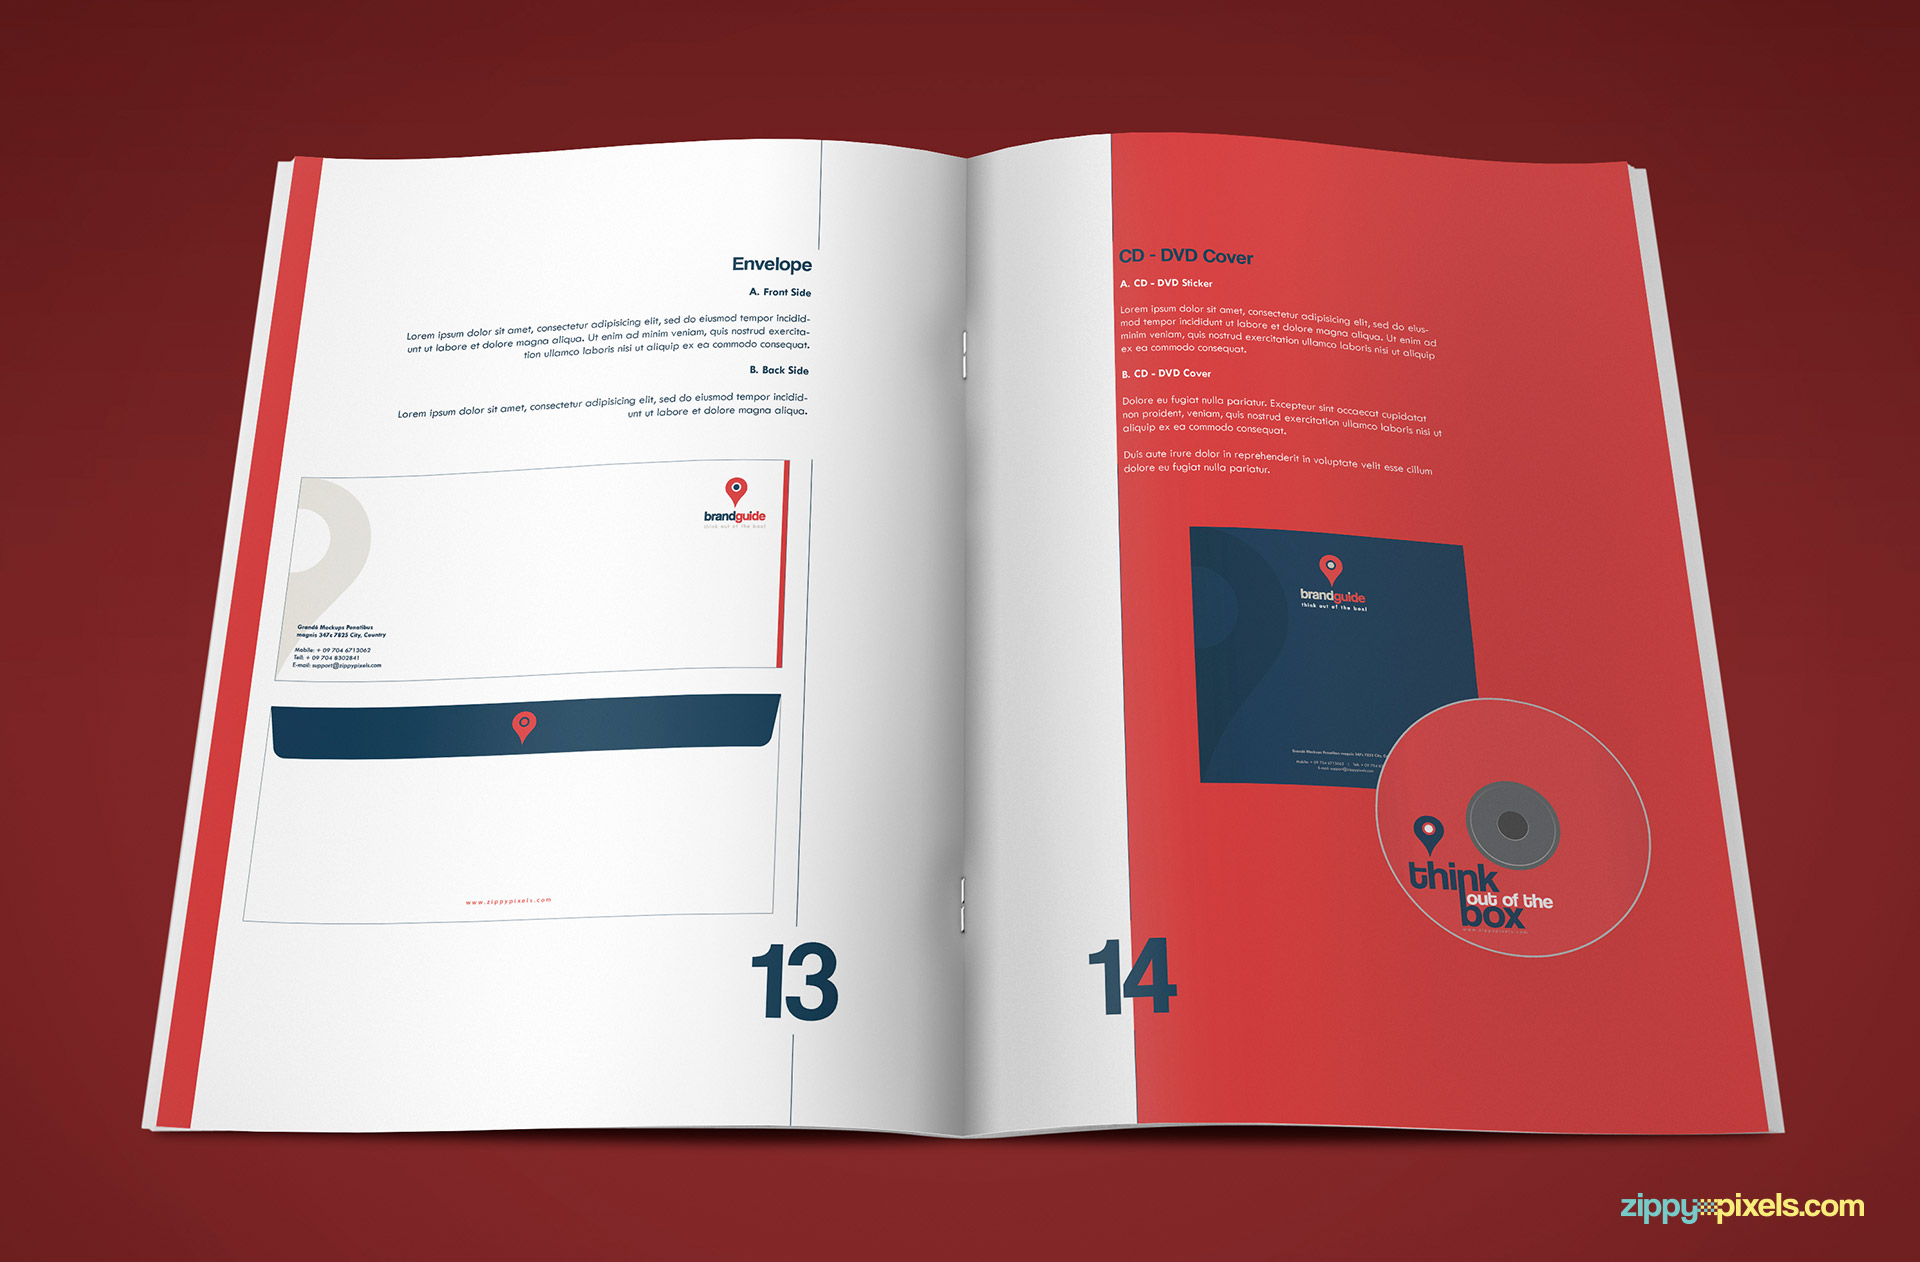 Professional Brand Guidelines Template - Envelope and CD Cover guidelines